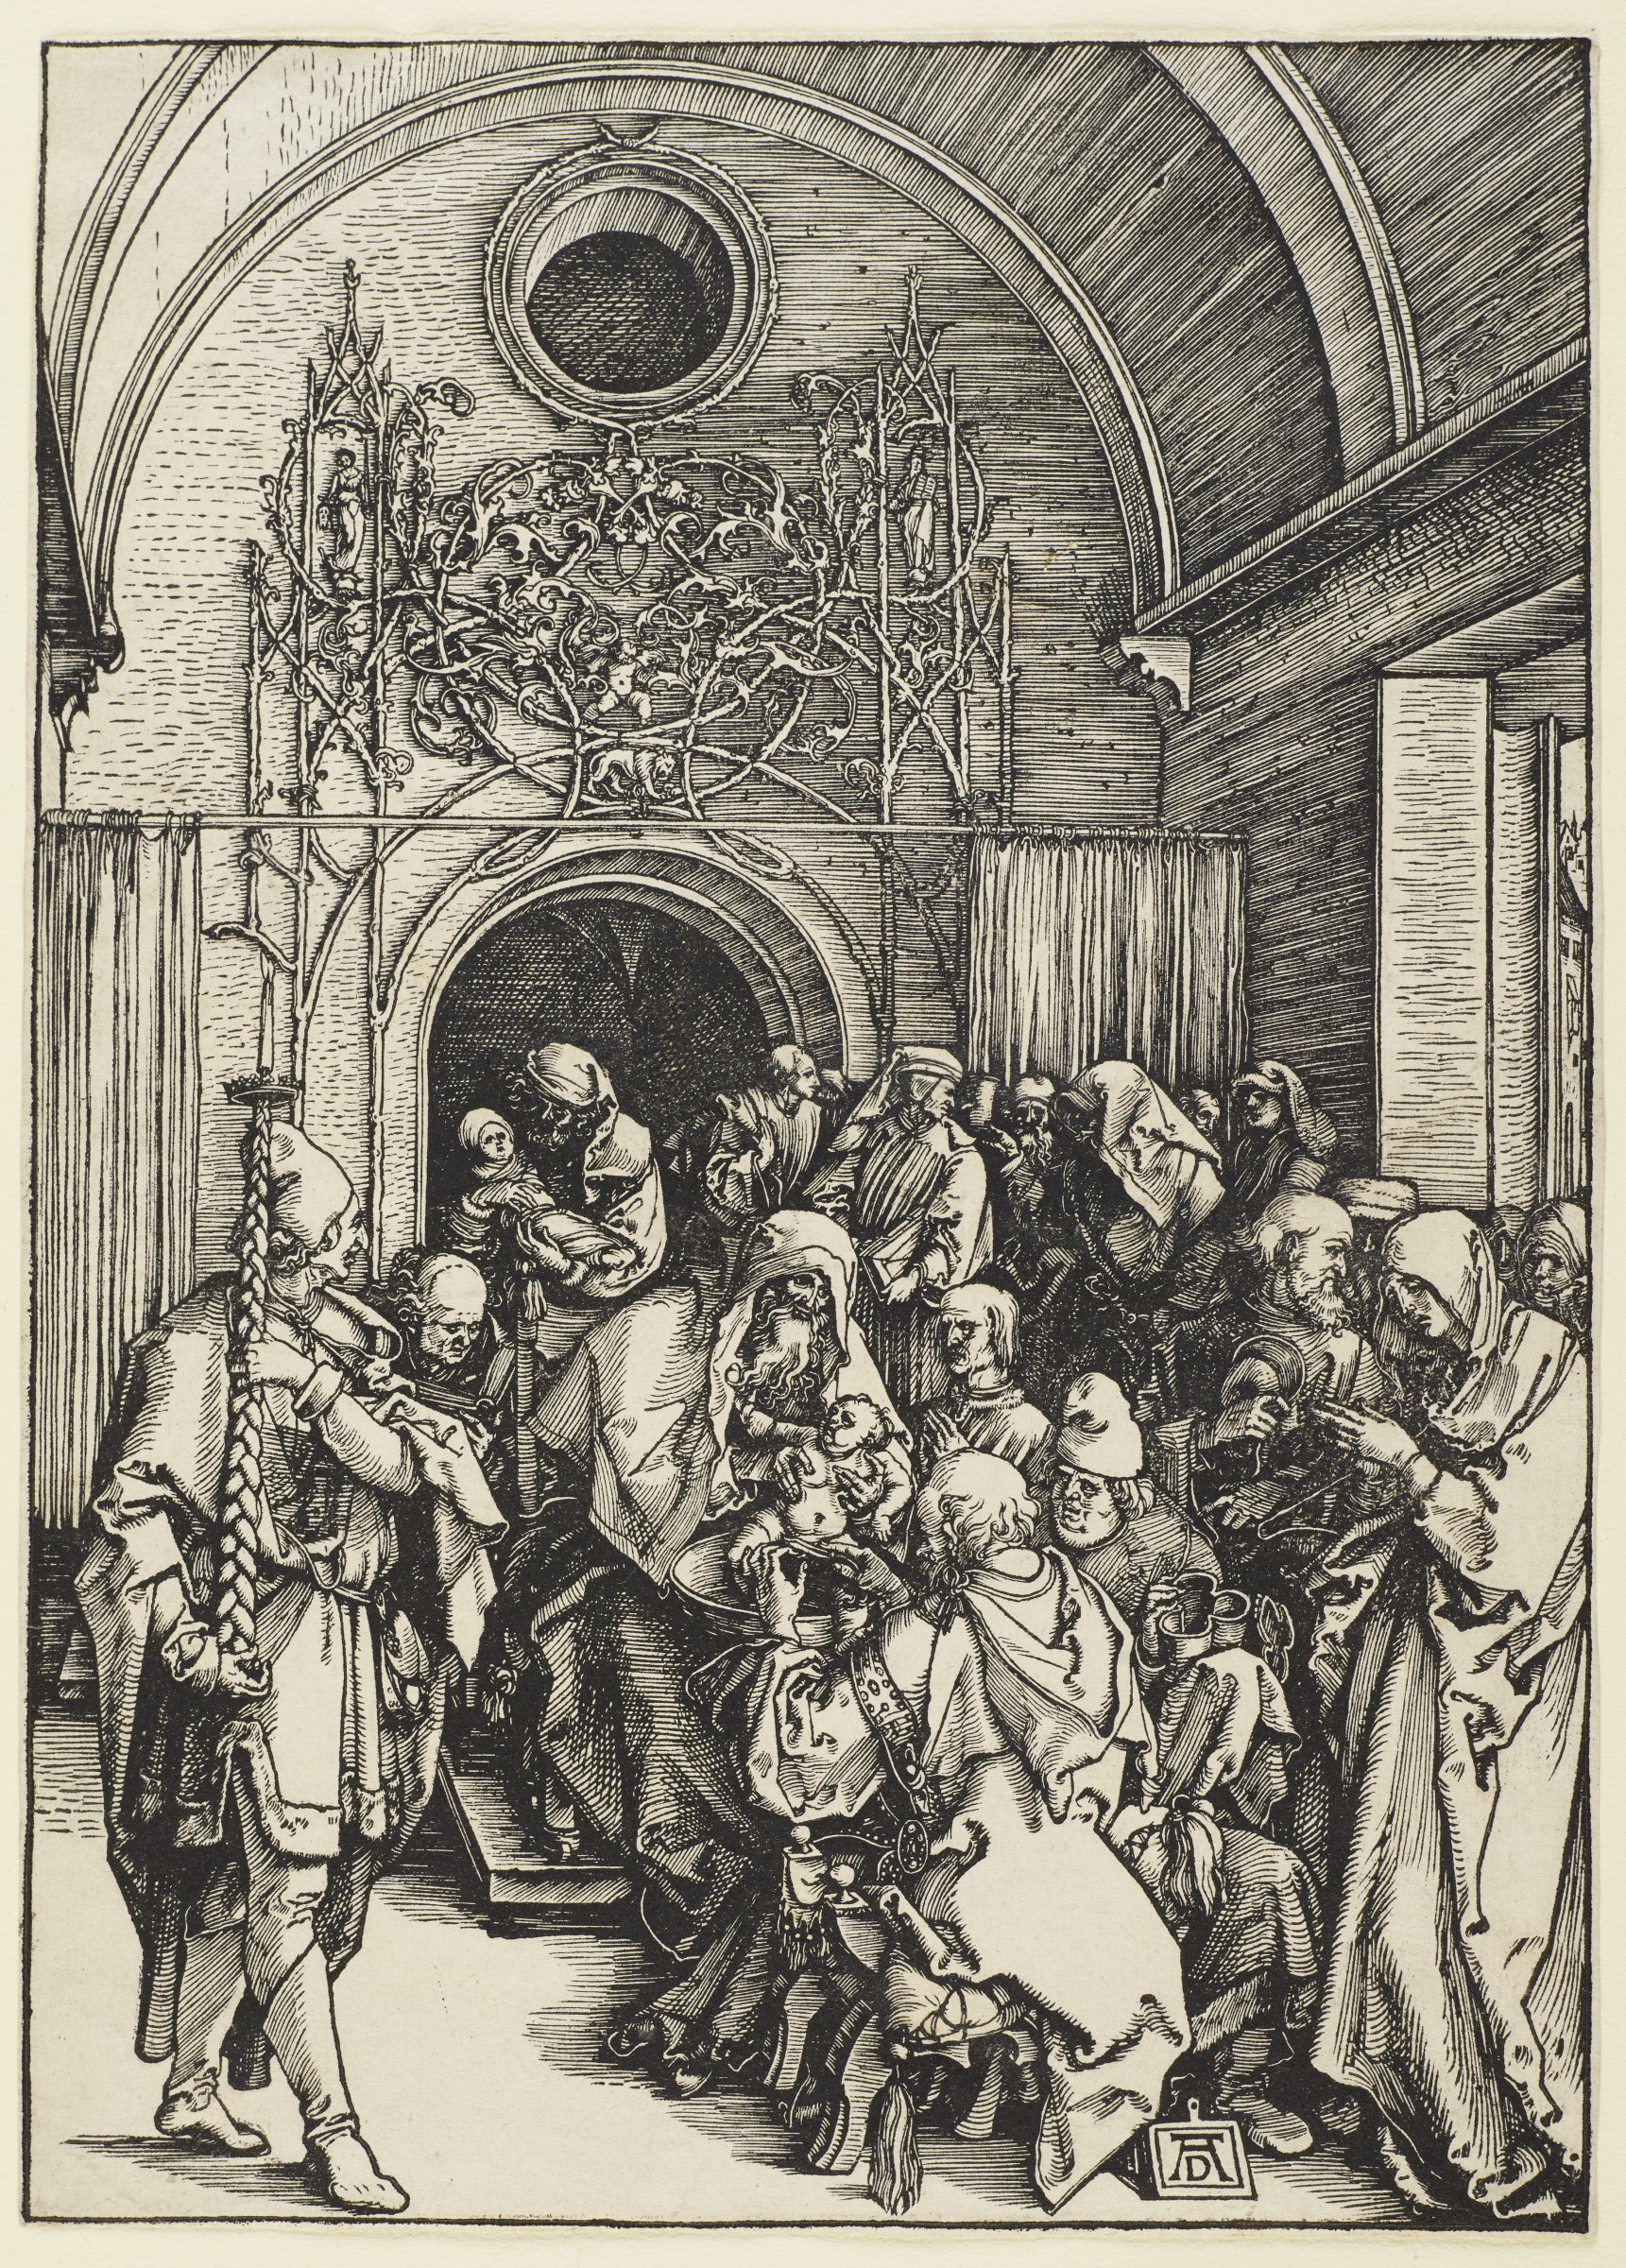 The circumcision takes place amidst a crowd of people inside a church. A candlebearer on left carries a tall, braided candlestick.